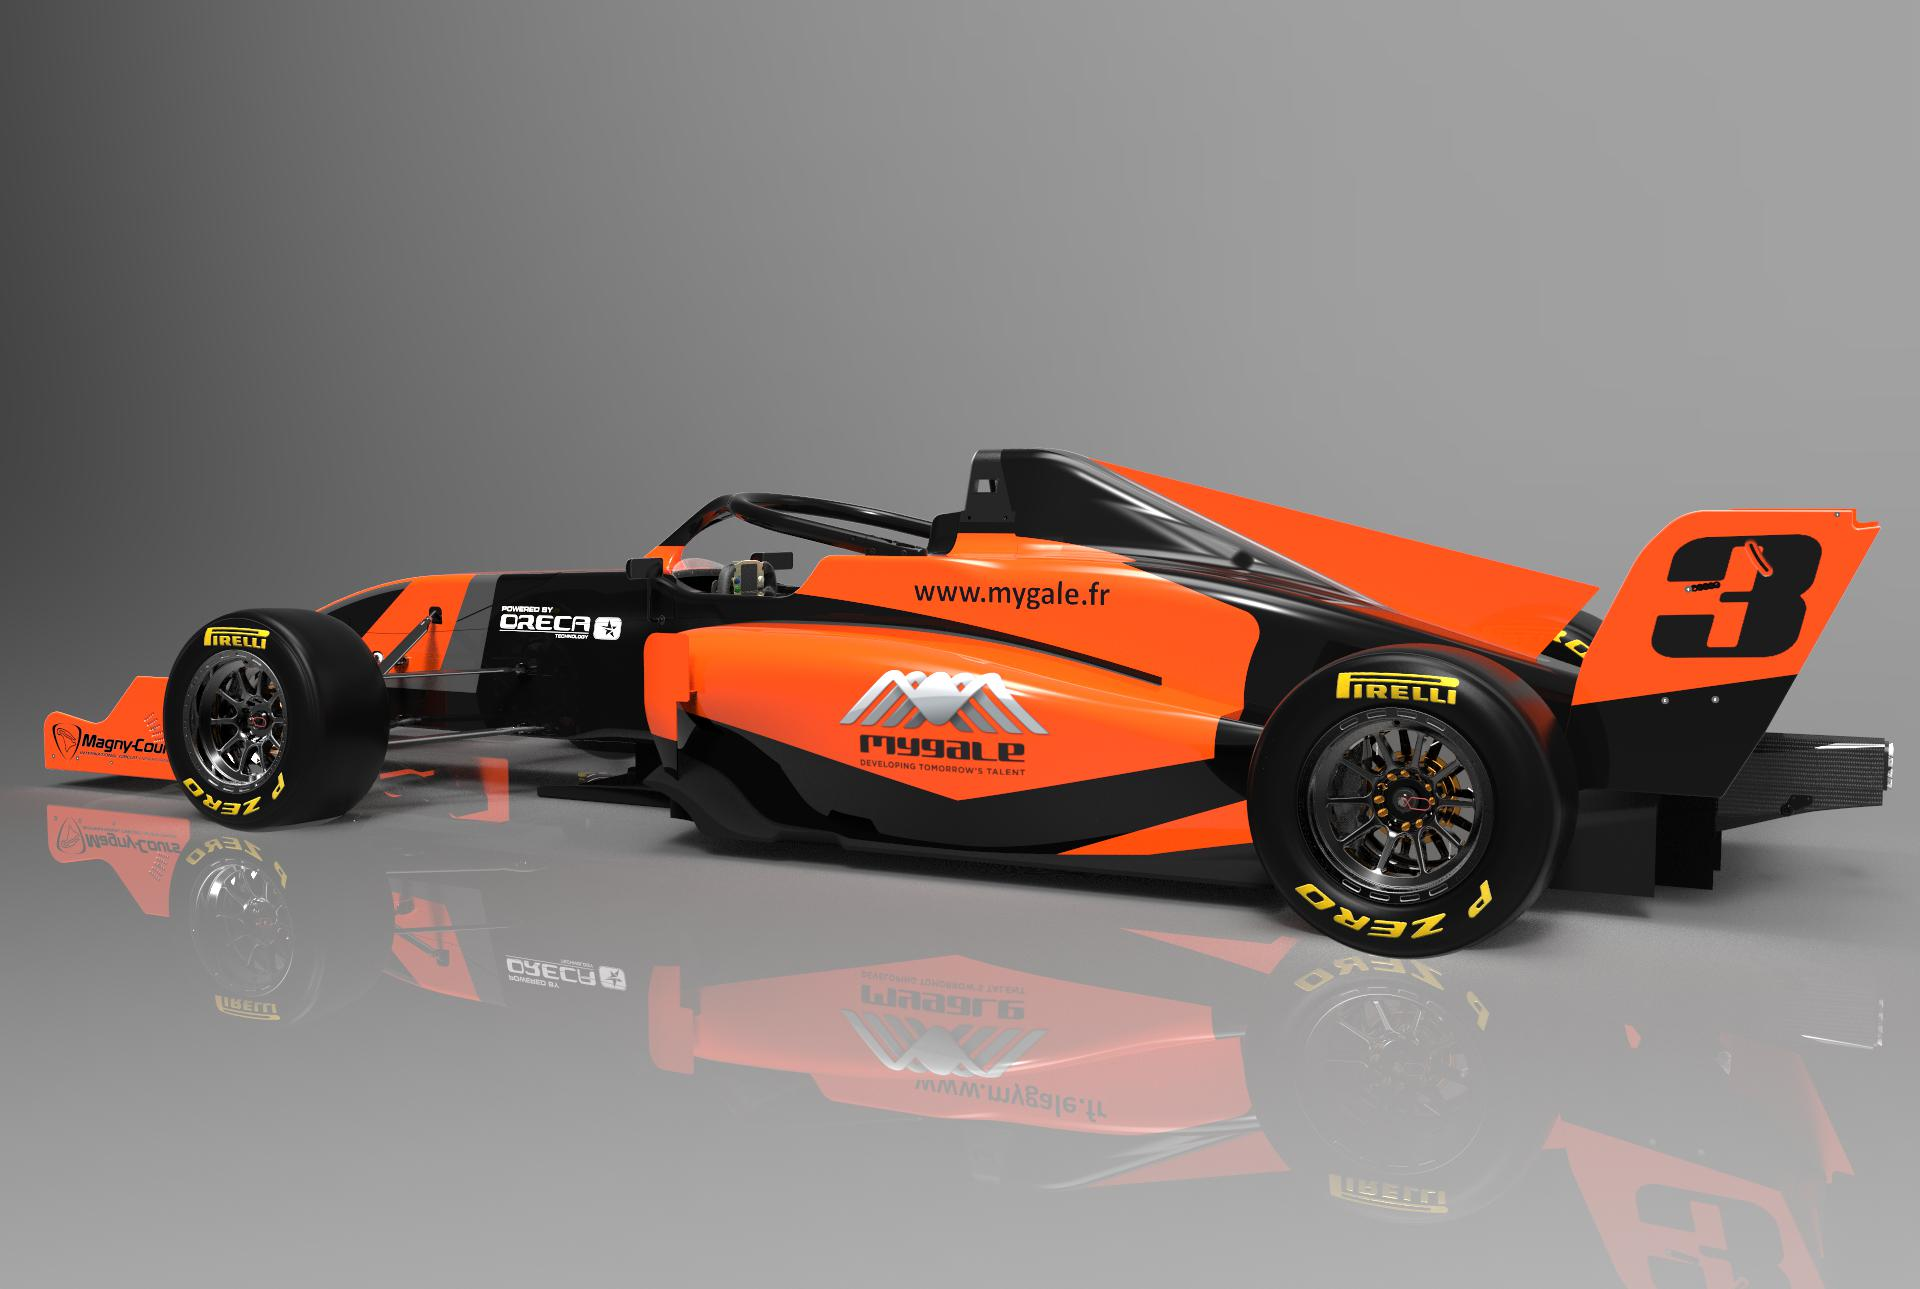 MYGALE RETURNS TO FORMULA 3 ! - Mygale Cars